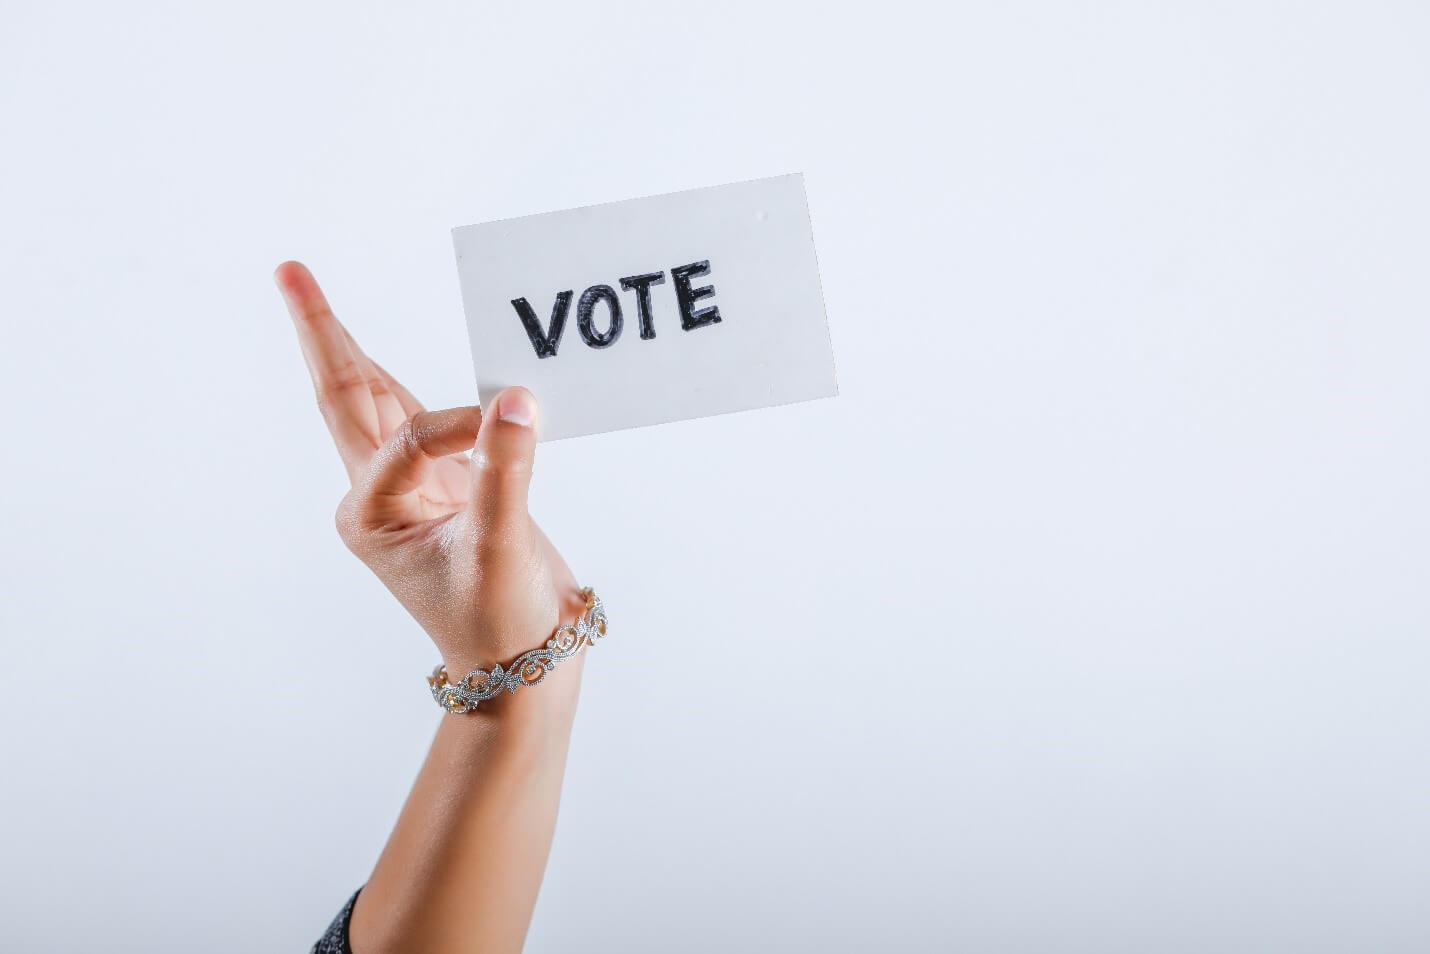 5 Best Tips to Teach Kids About Voting